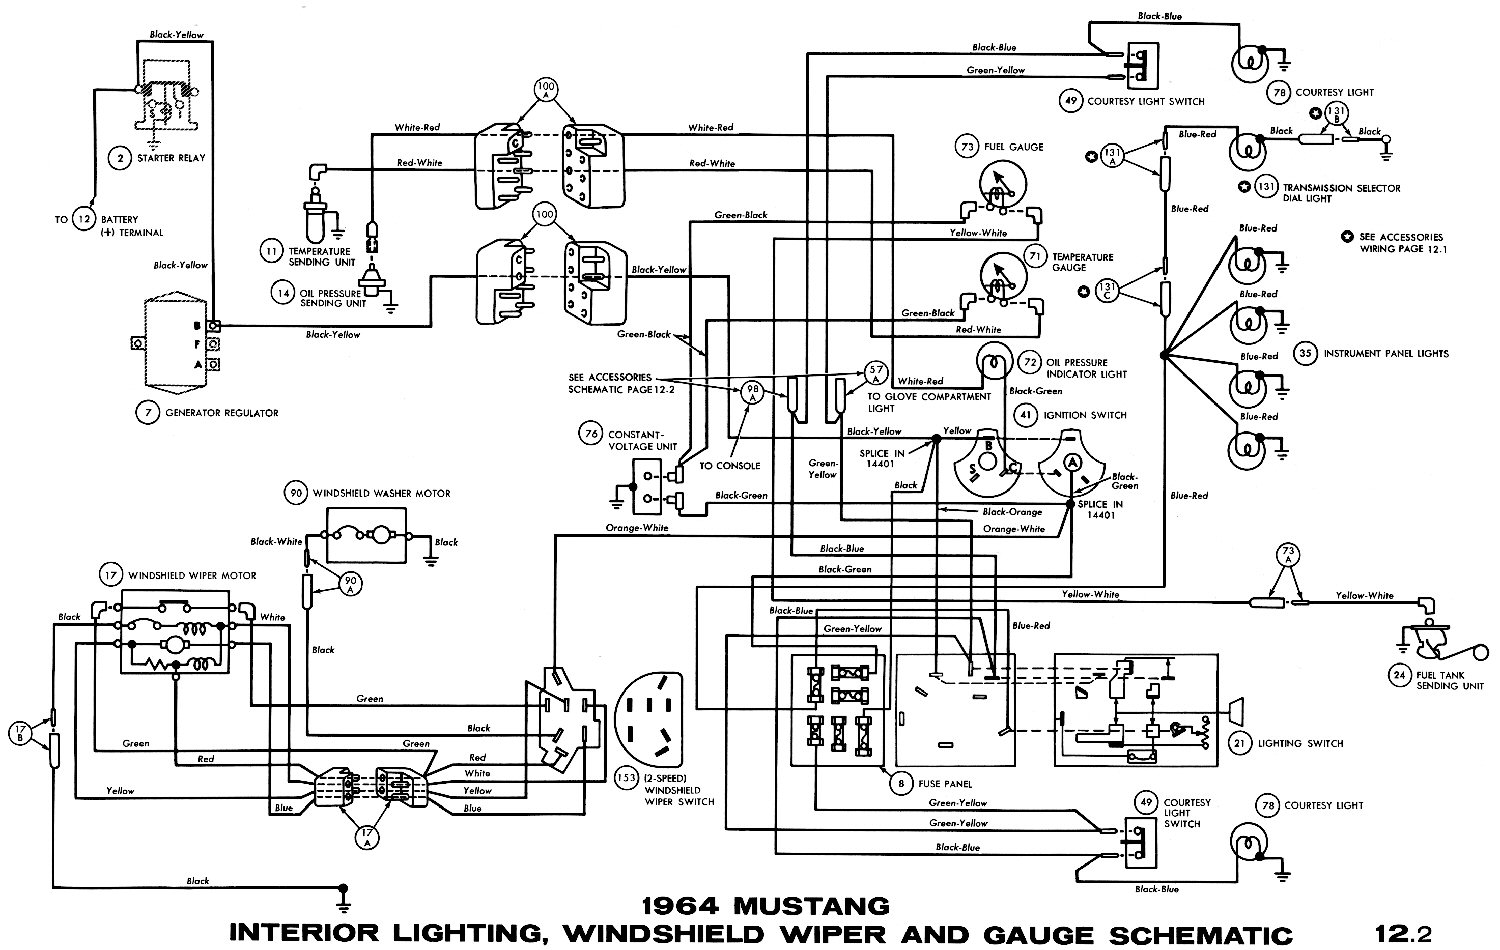 1964 mustang wiring diagrams - average joe restoration  average joe restoration